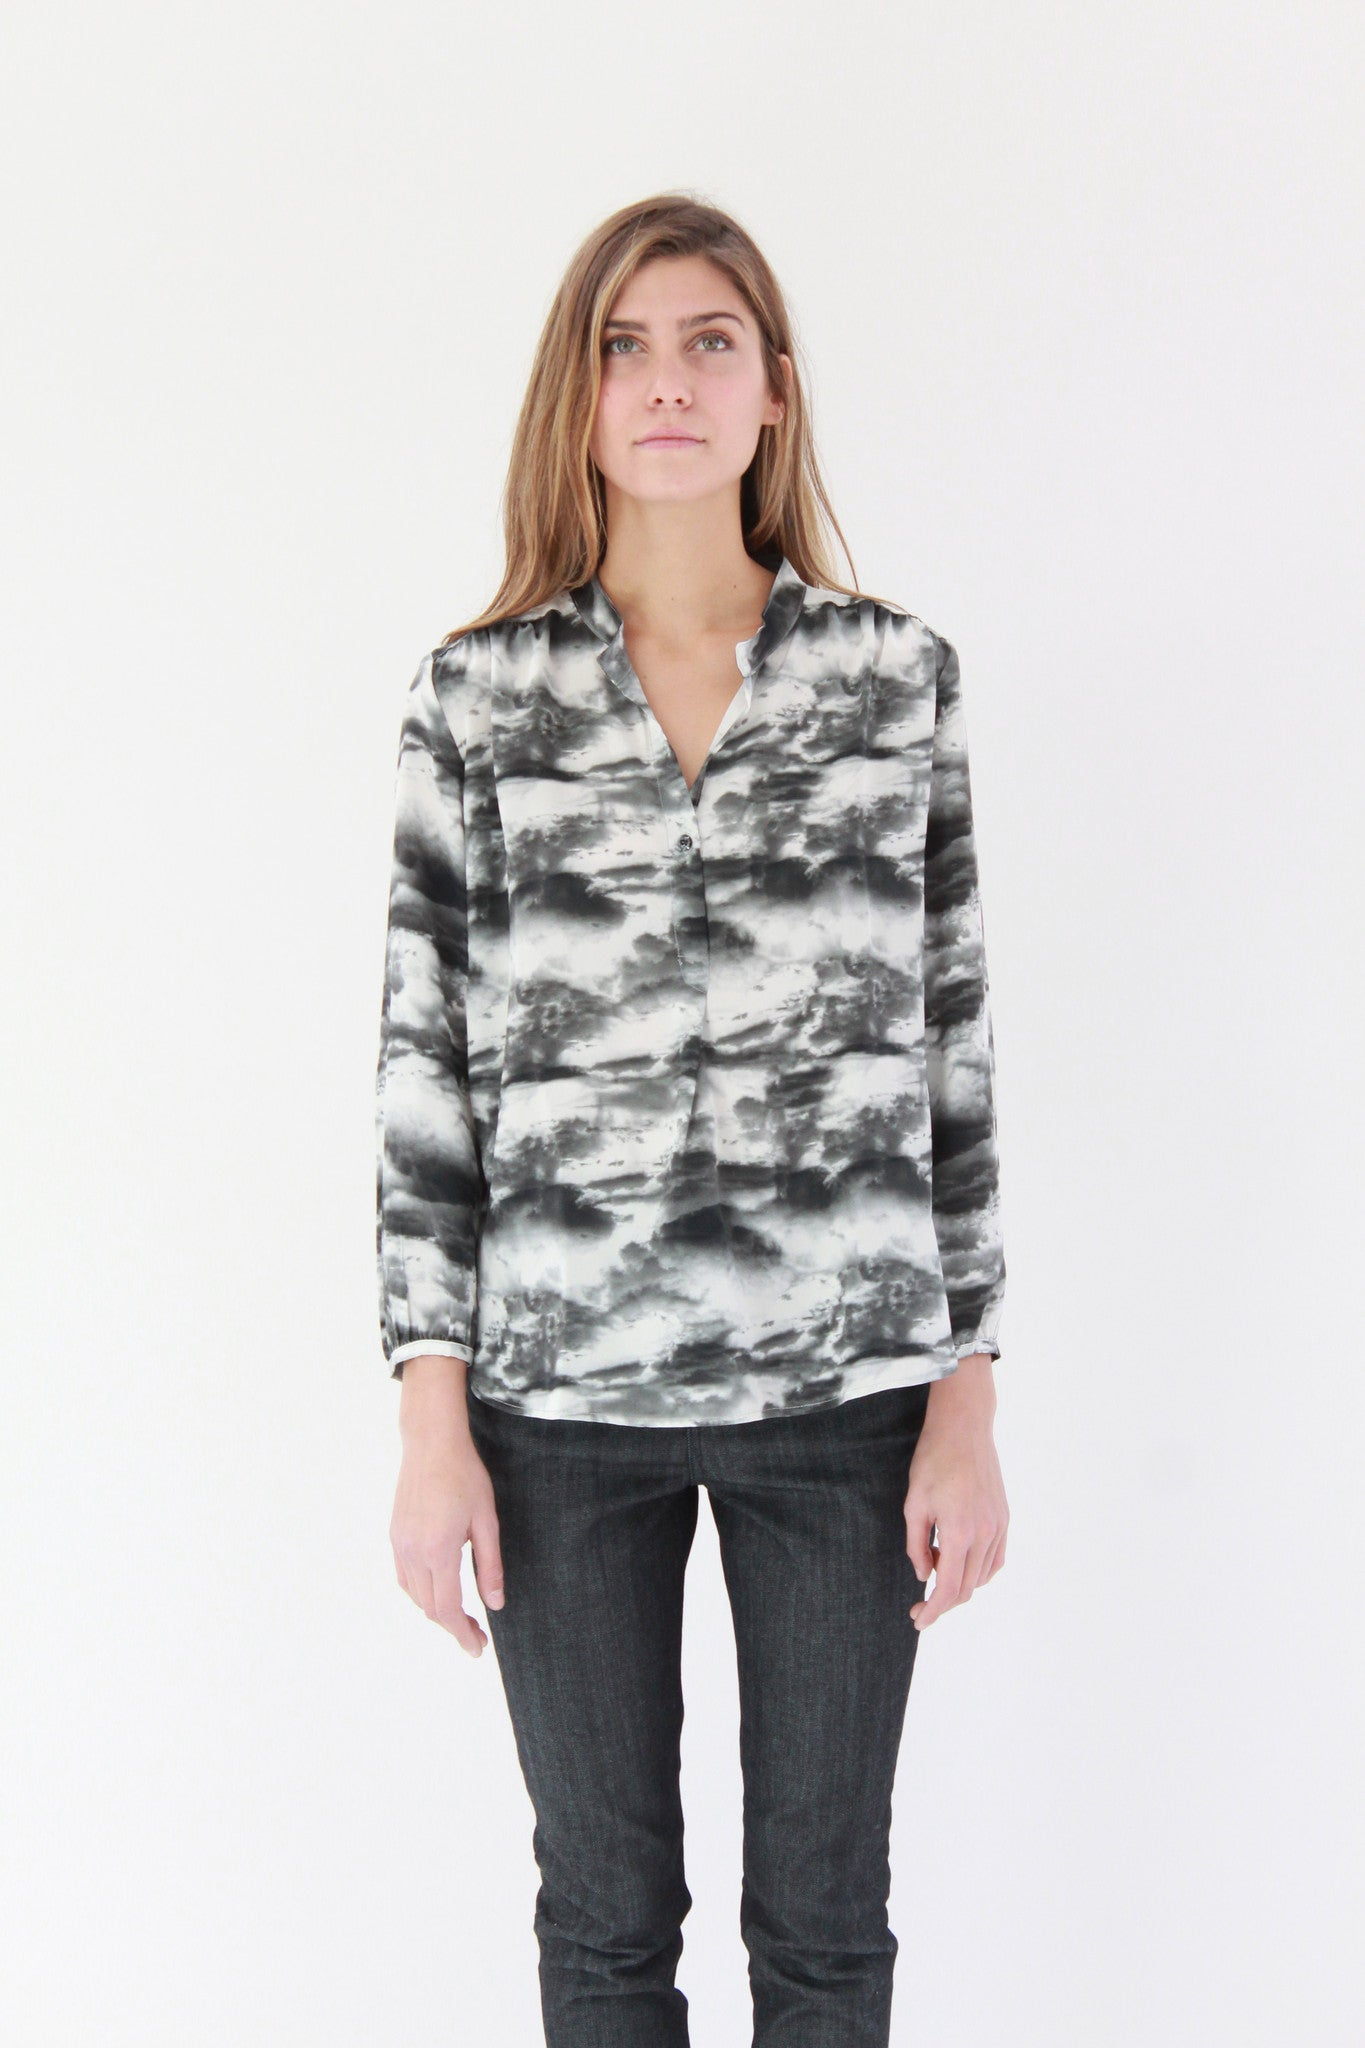 Beklina Podolls Pullover Blouse Cloud Print